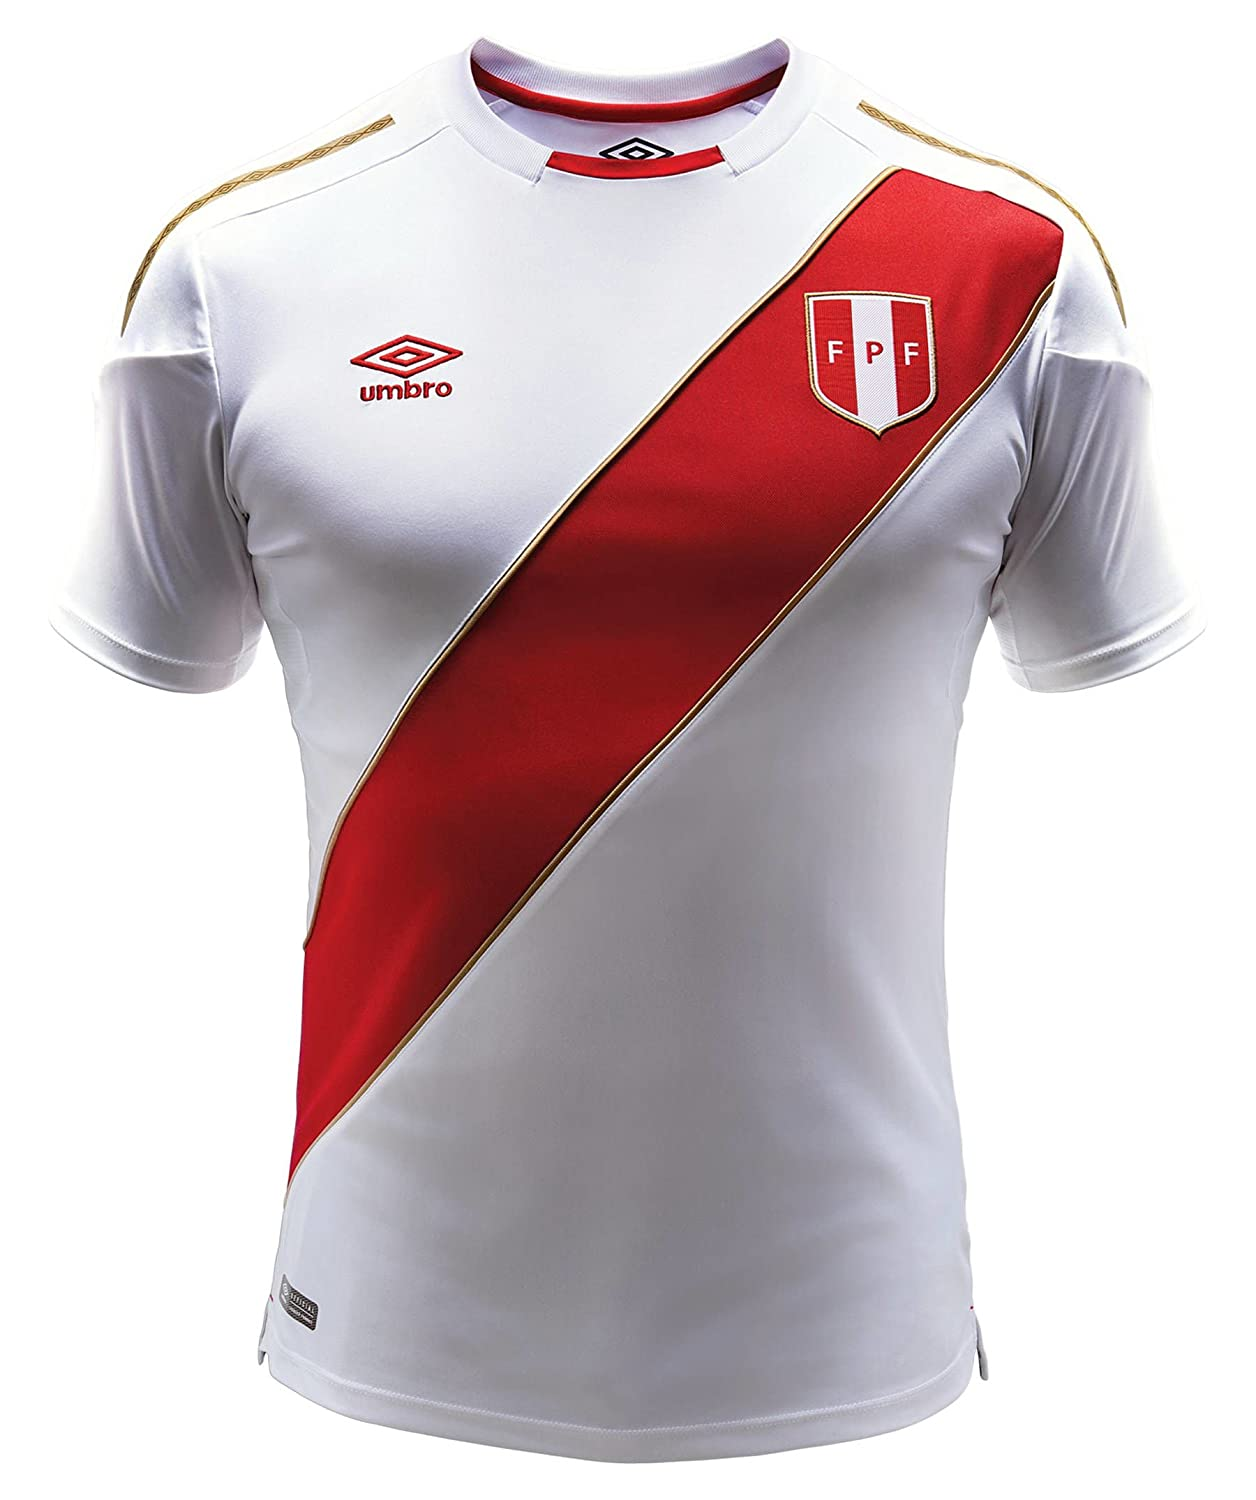 2018-2019 Peru Home Umbro Football Shirt B07BNNYZJR Small 35-37